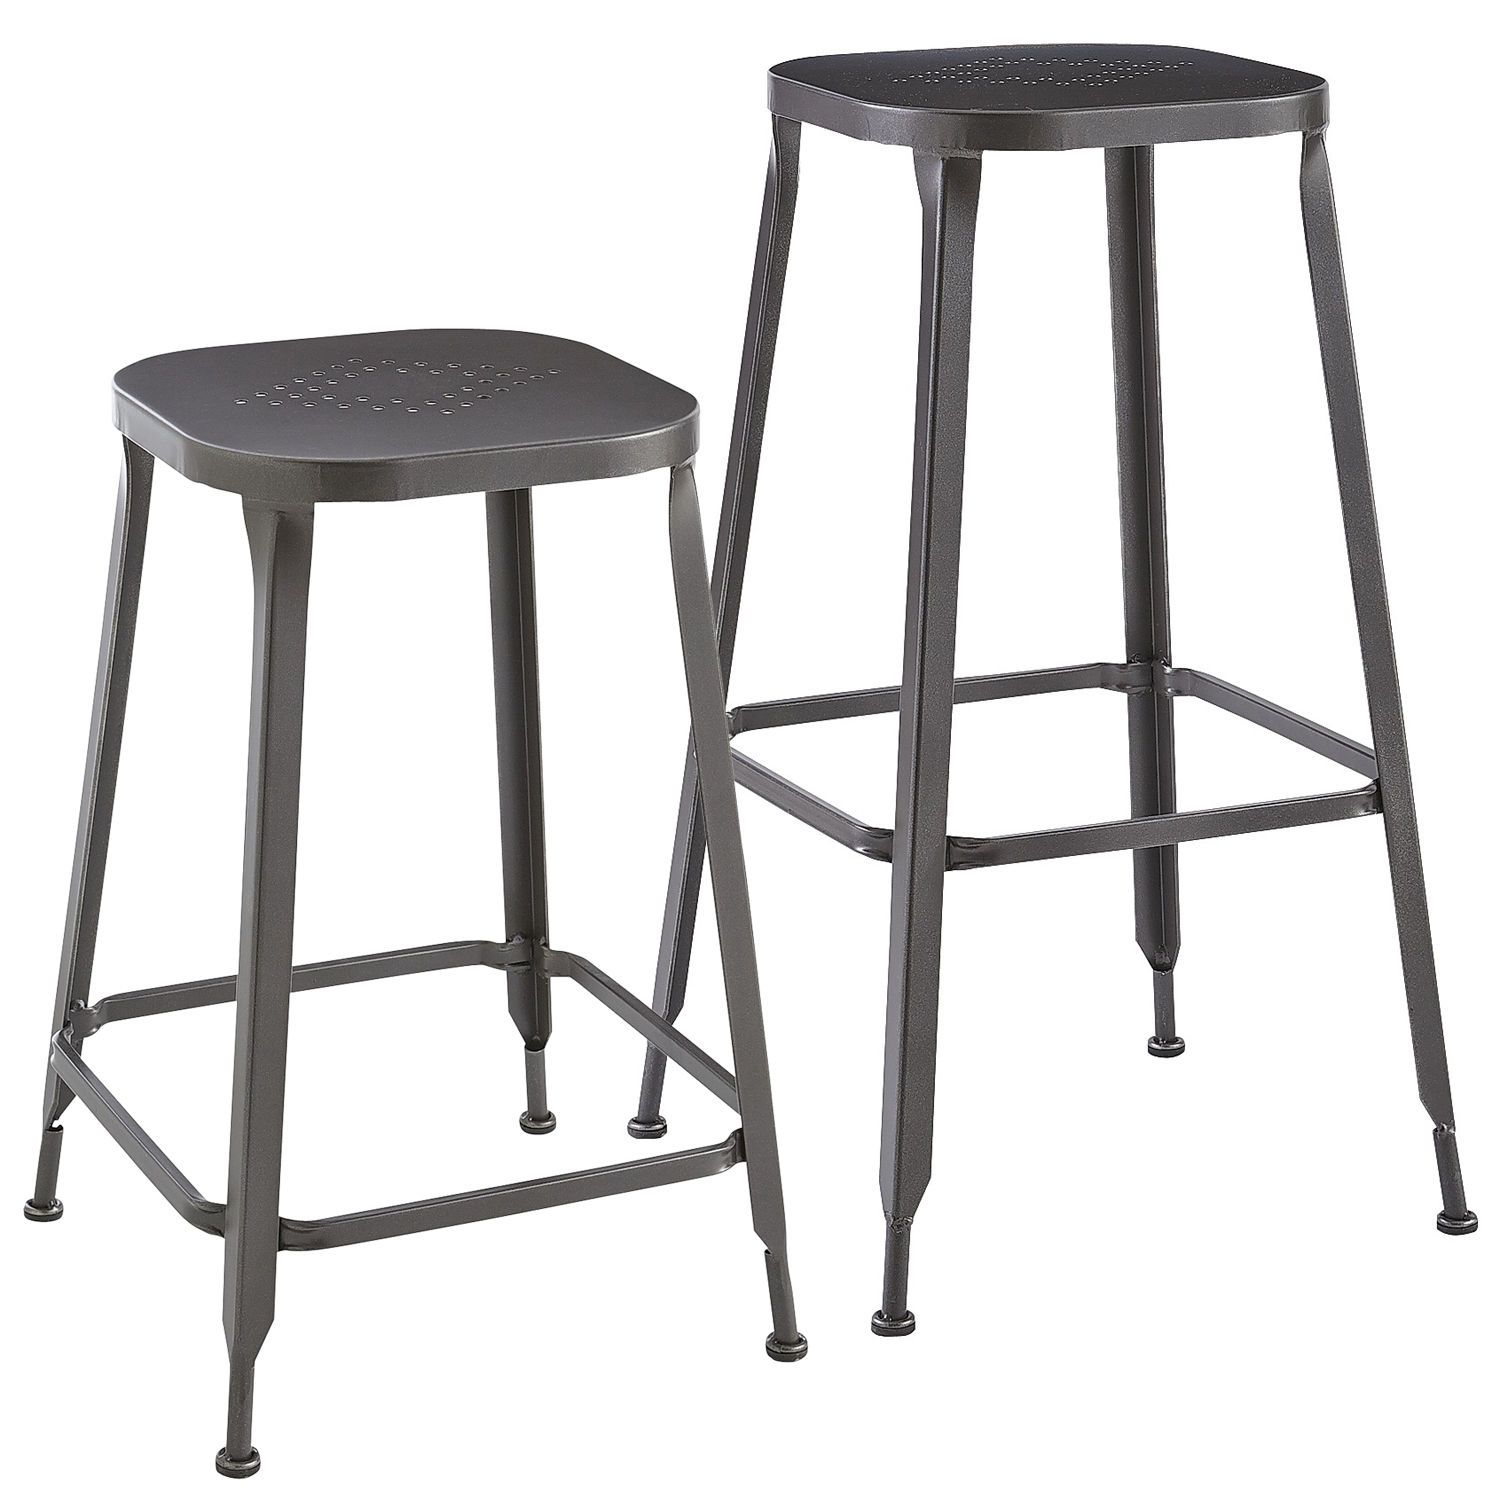 Astonishing Weldon Backless Bar Counter Stools Gunmetal Pier 1 Gmtry Best Dining Table And Chair Ideas Images Gmtryco